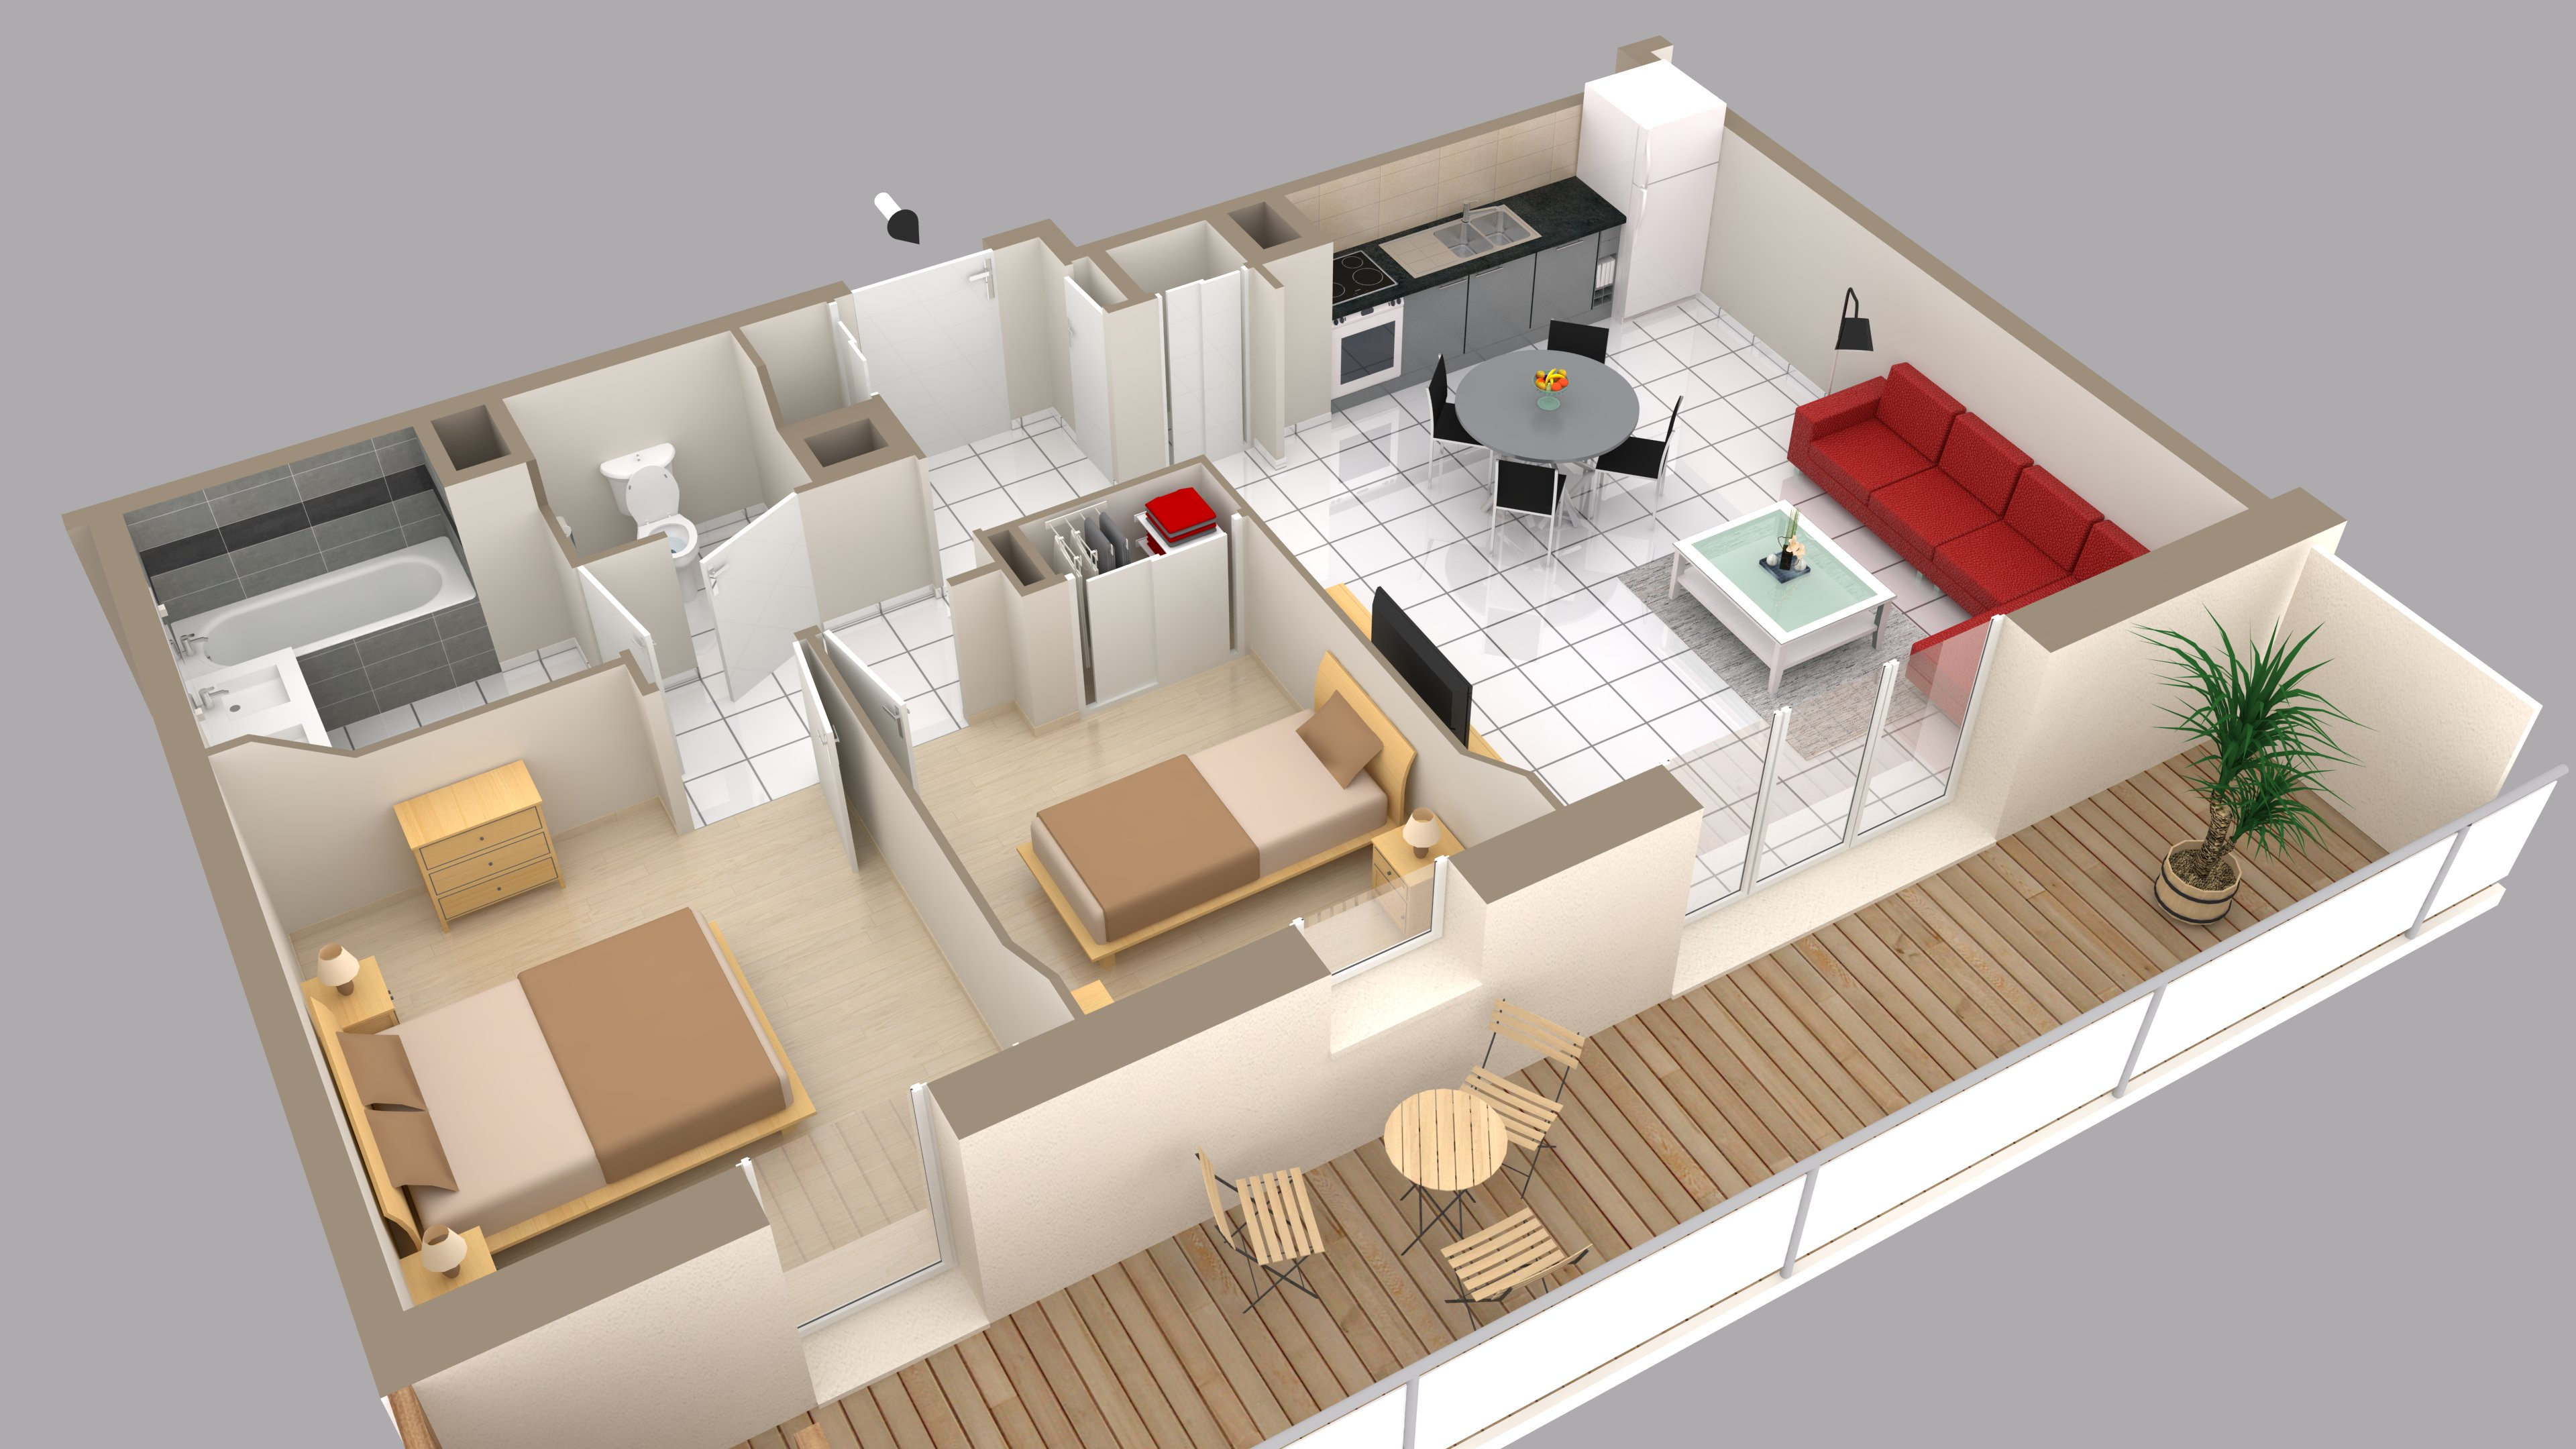 Plan ameublement maison for Decoration maison 3d gratuit en ligne